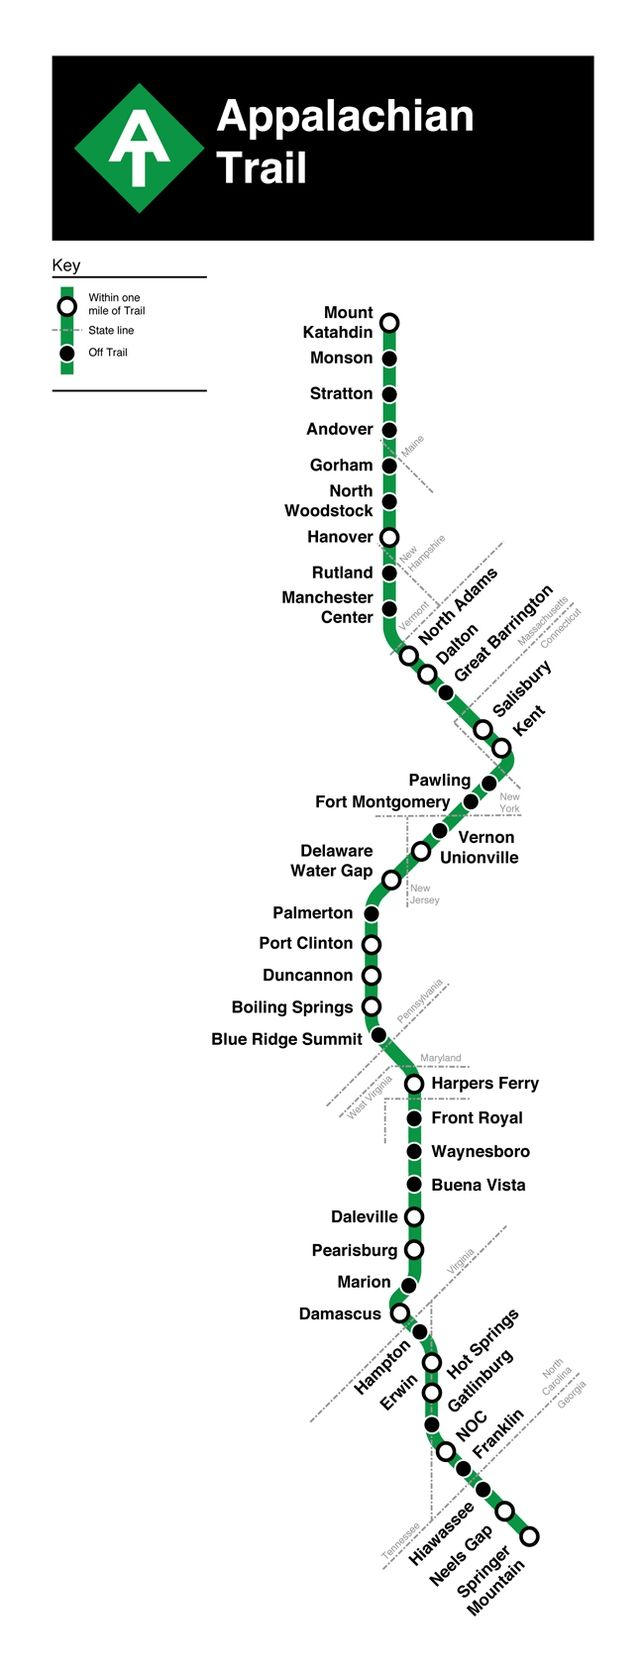 credit: Peter Dunn.  It's a map of the famous Appalachian Trail, but done subway-style. The trail is so long - 2,184 miles/3,515 km - that even as a map it doesn't all fit on a screen.